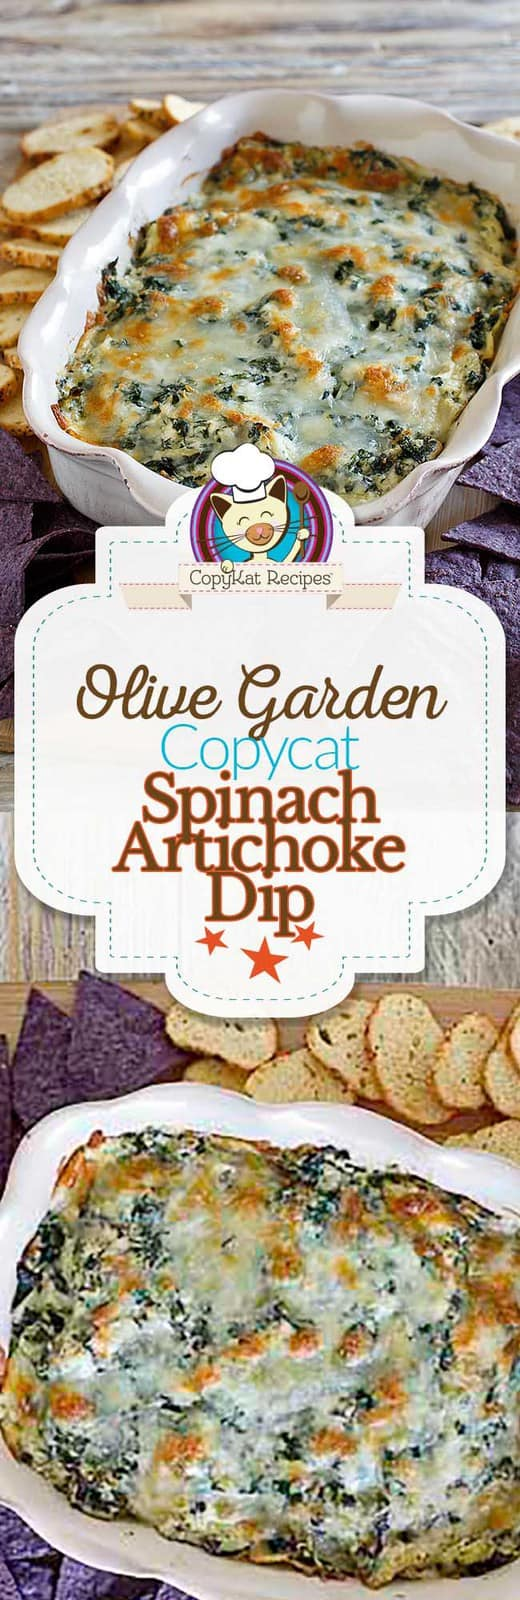 You can recreate the Olive Garden Spinach-Artichoke Dip at home with this easy copycat recipe.